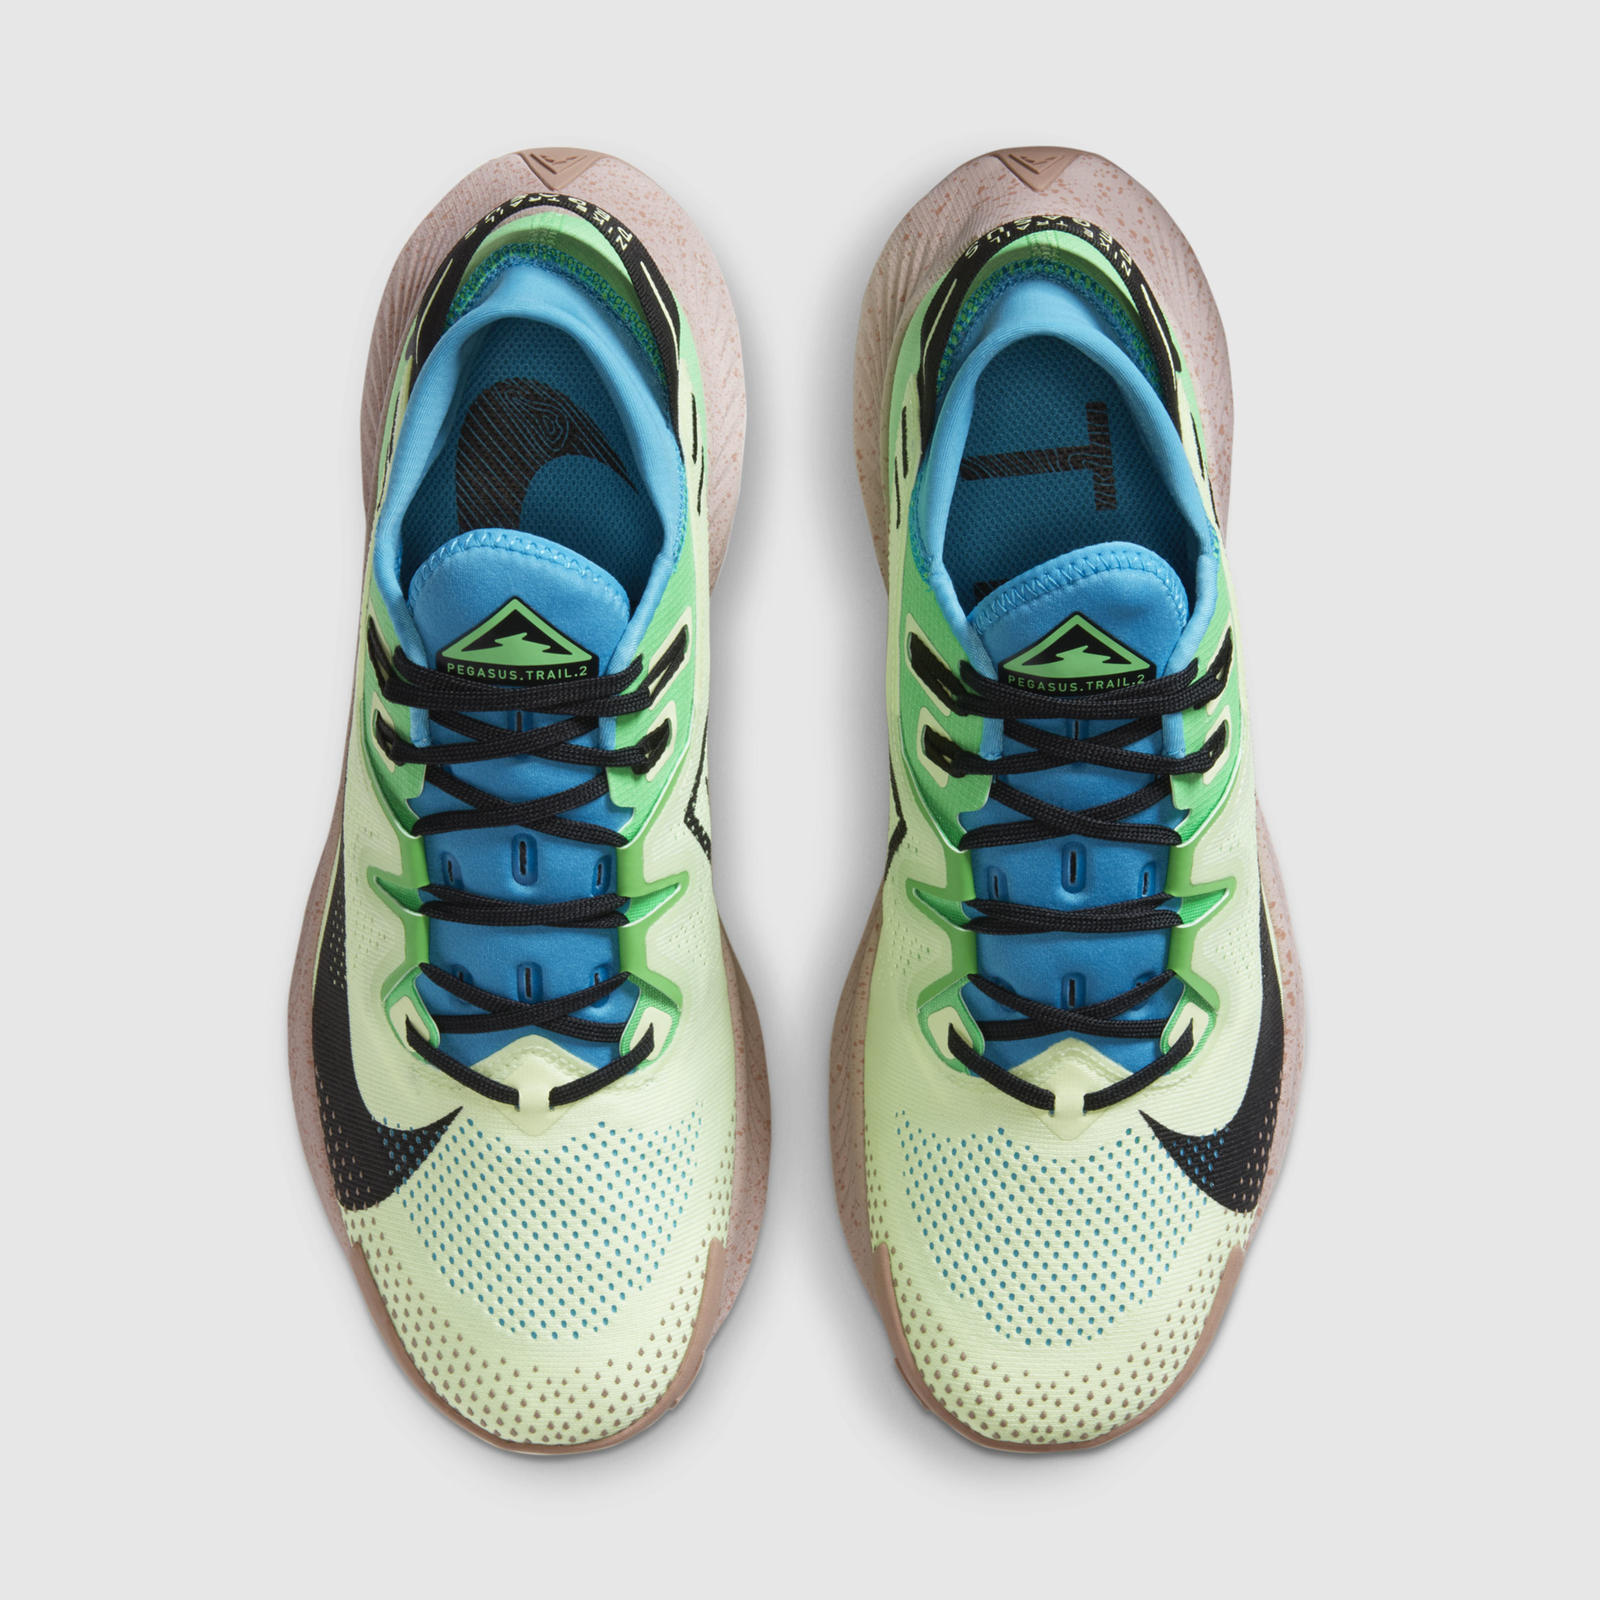 Nike Trail Wildhorse 6 Air Zoom Terra Kiger 6 Official Images and Release Date 22